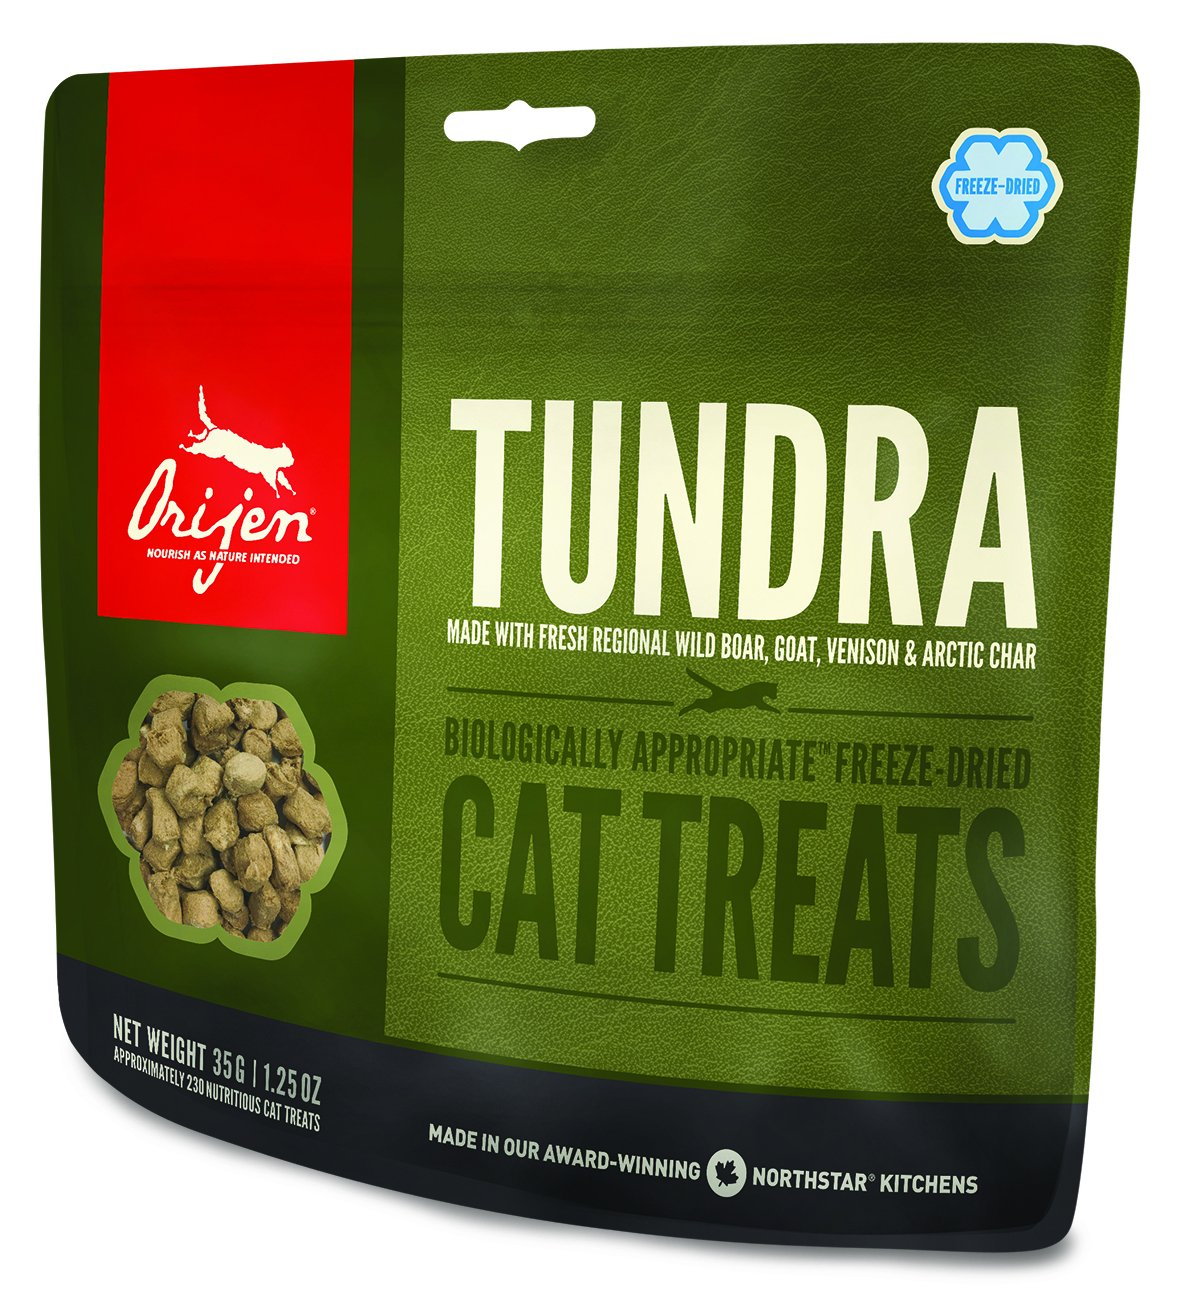 Orijen Tundra Freeze Dried Cat Treats 1.25 Ounces by Orijen